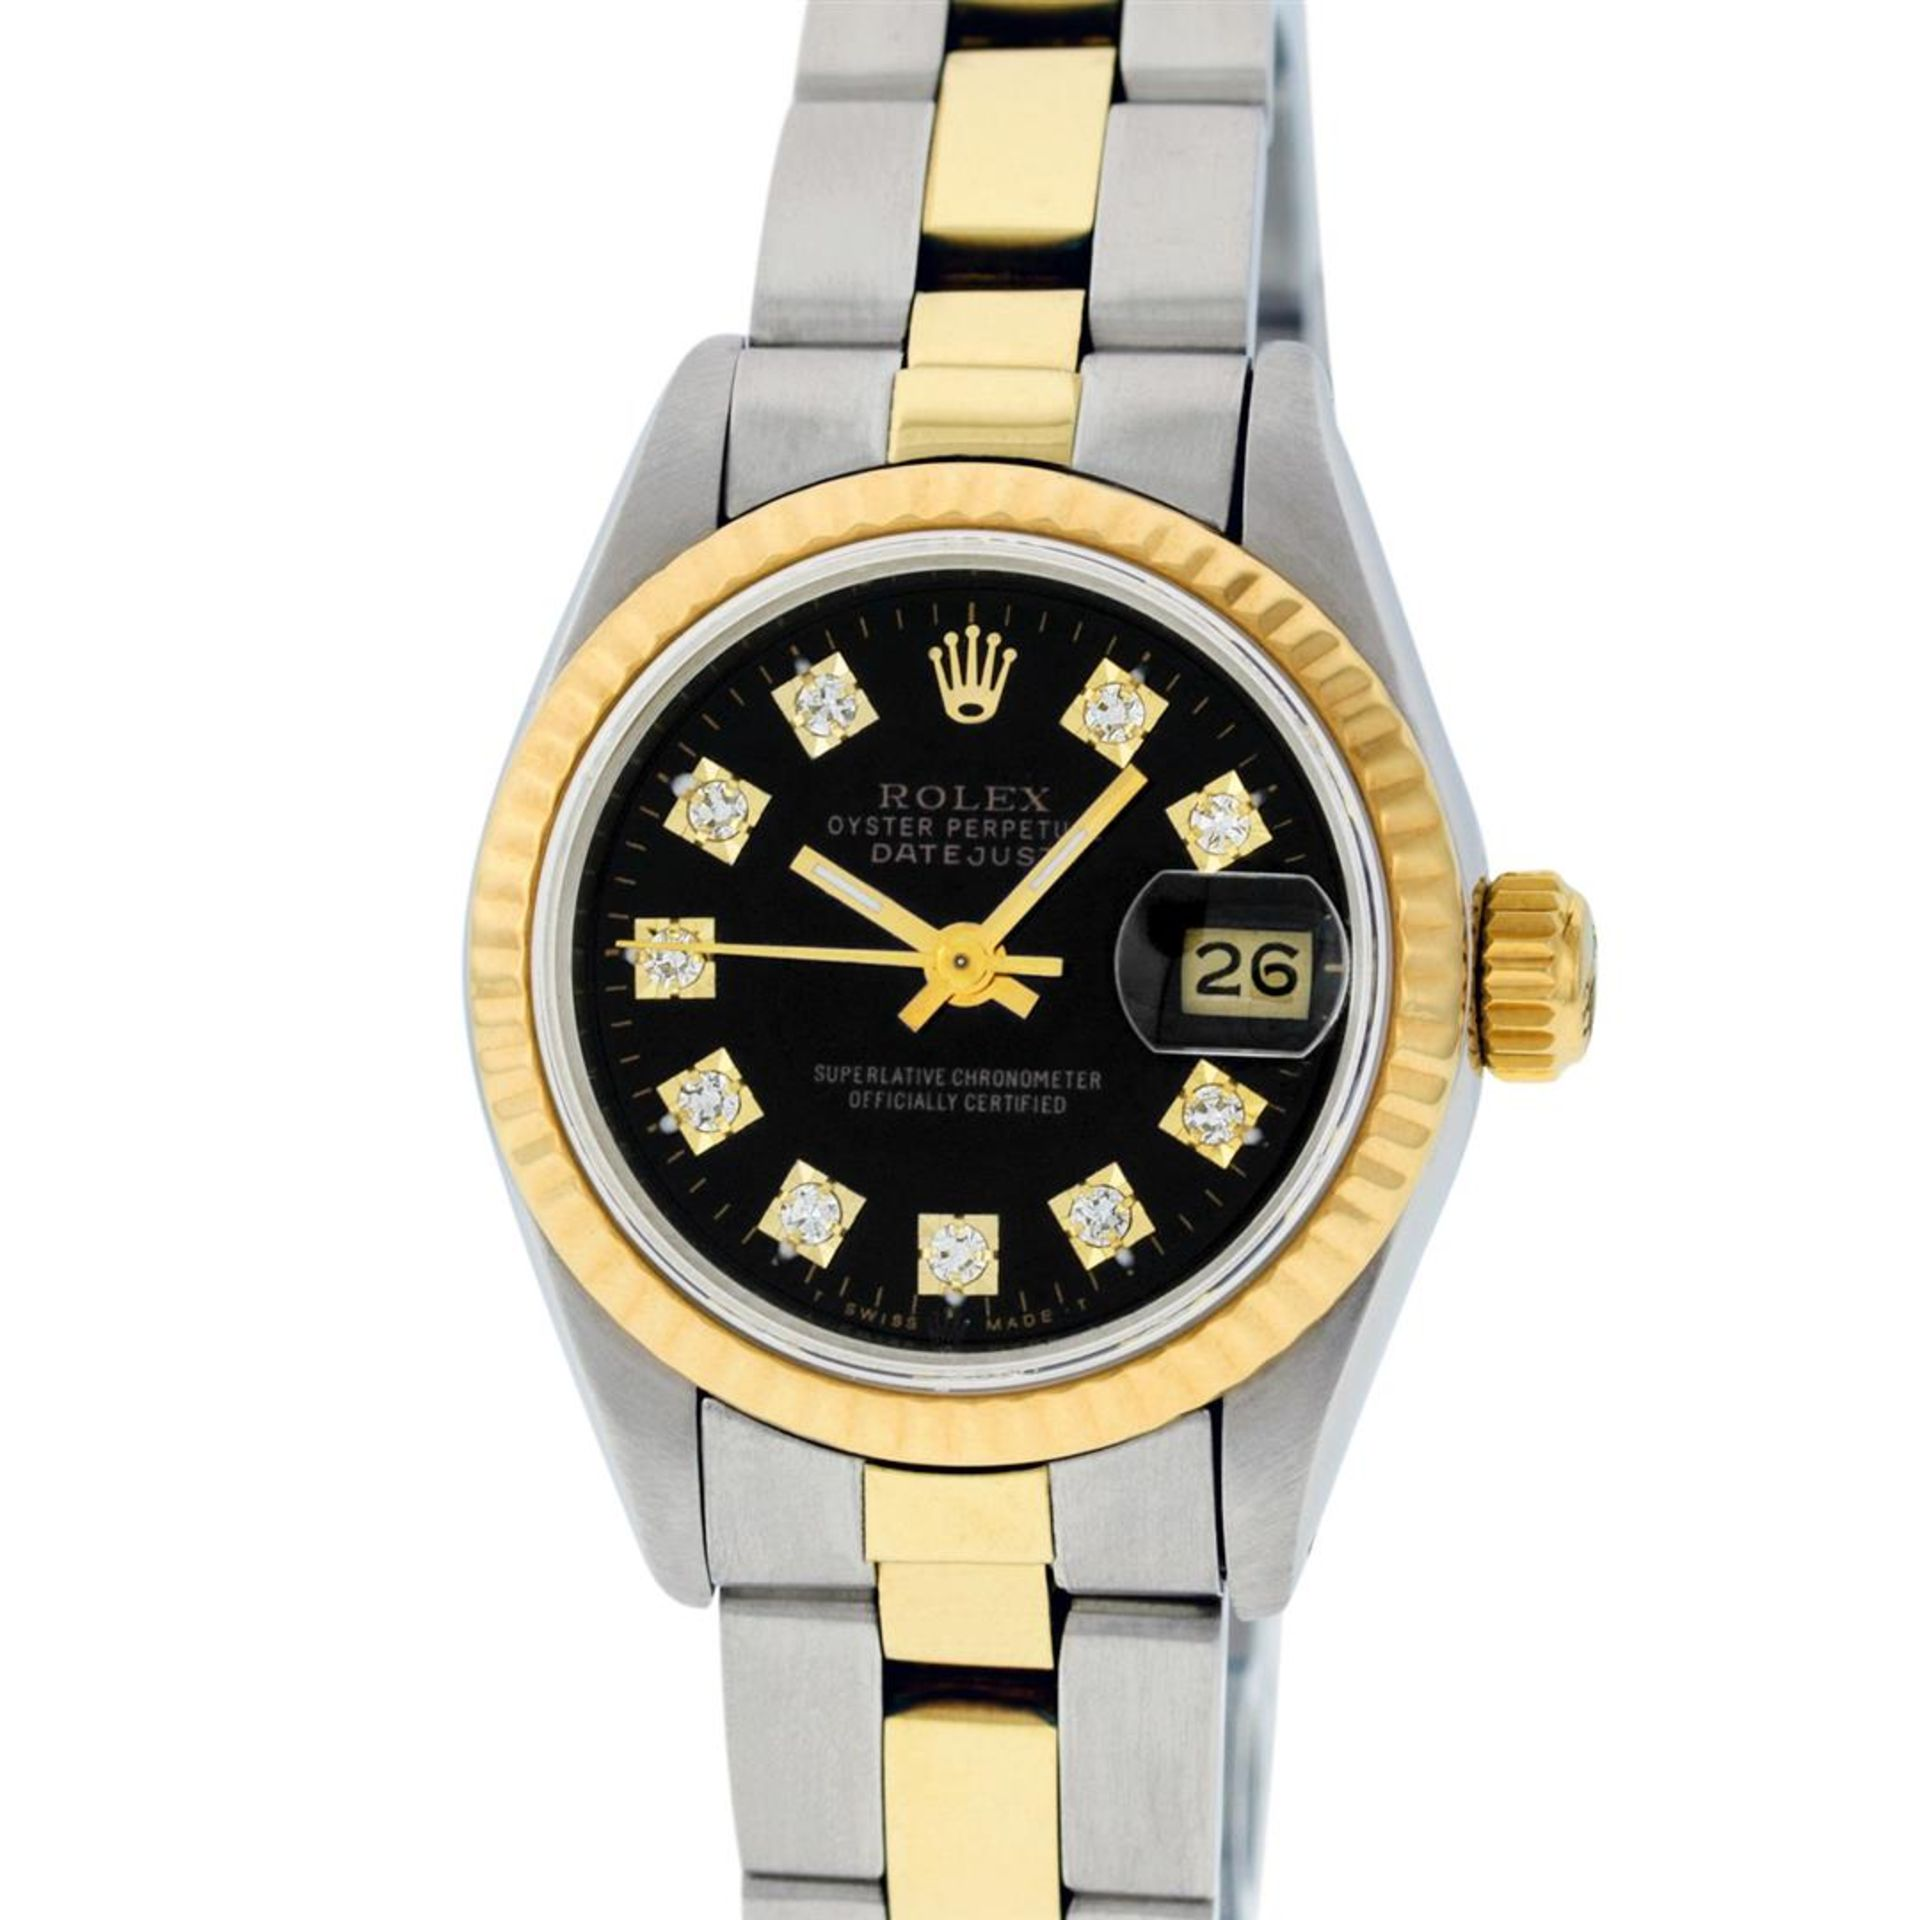 Rolex Ladies 26 Black Diamond Oyster Perpetual Datejust Polished Serviced - Image 2 of 9